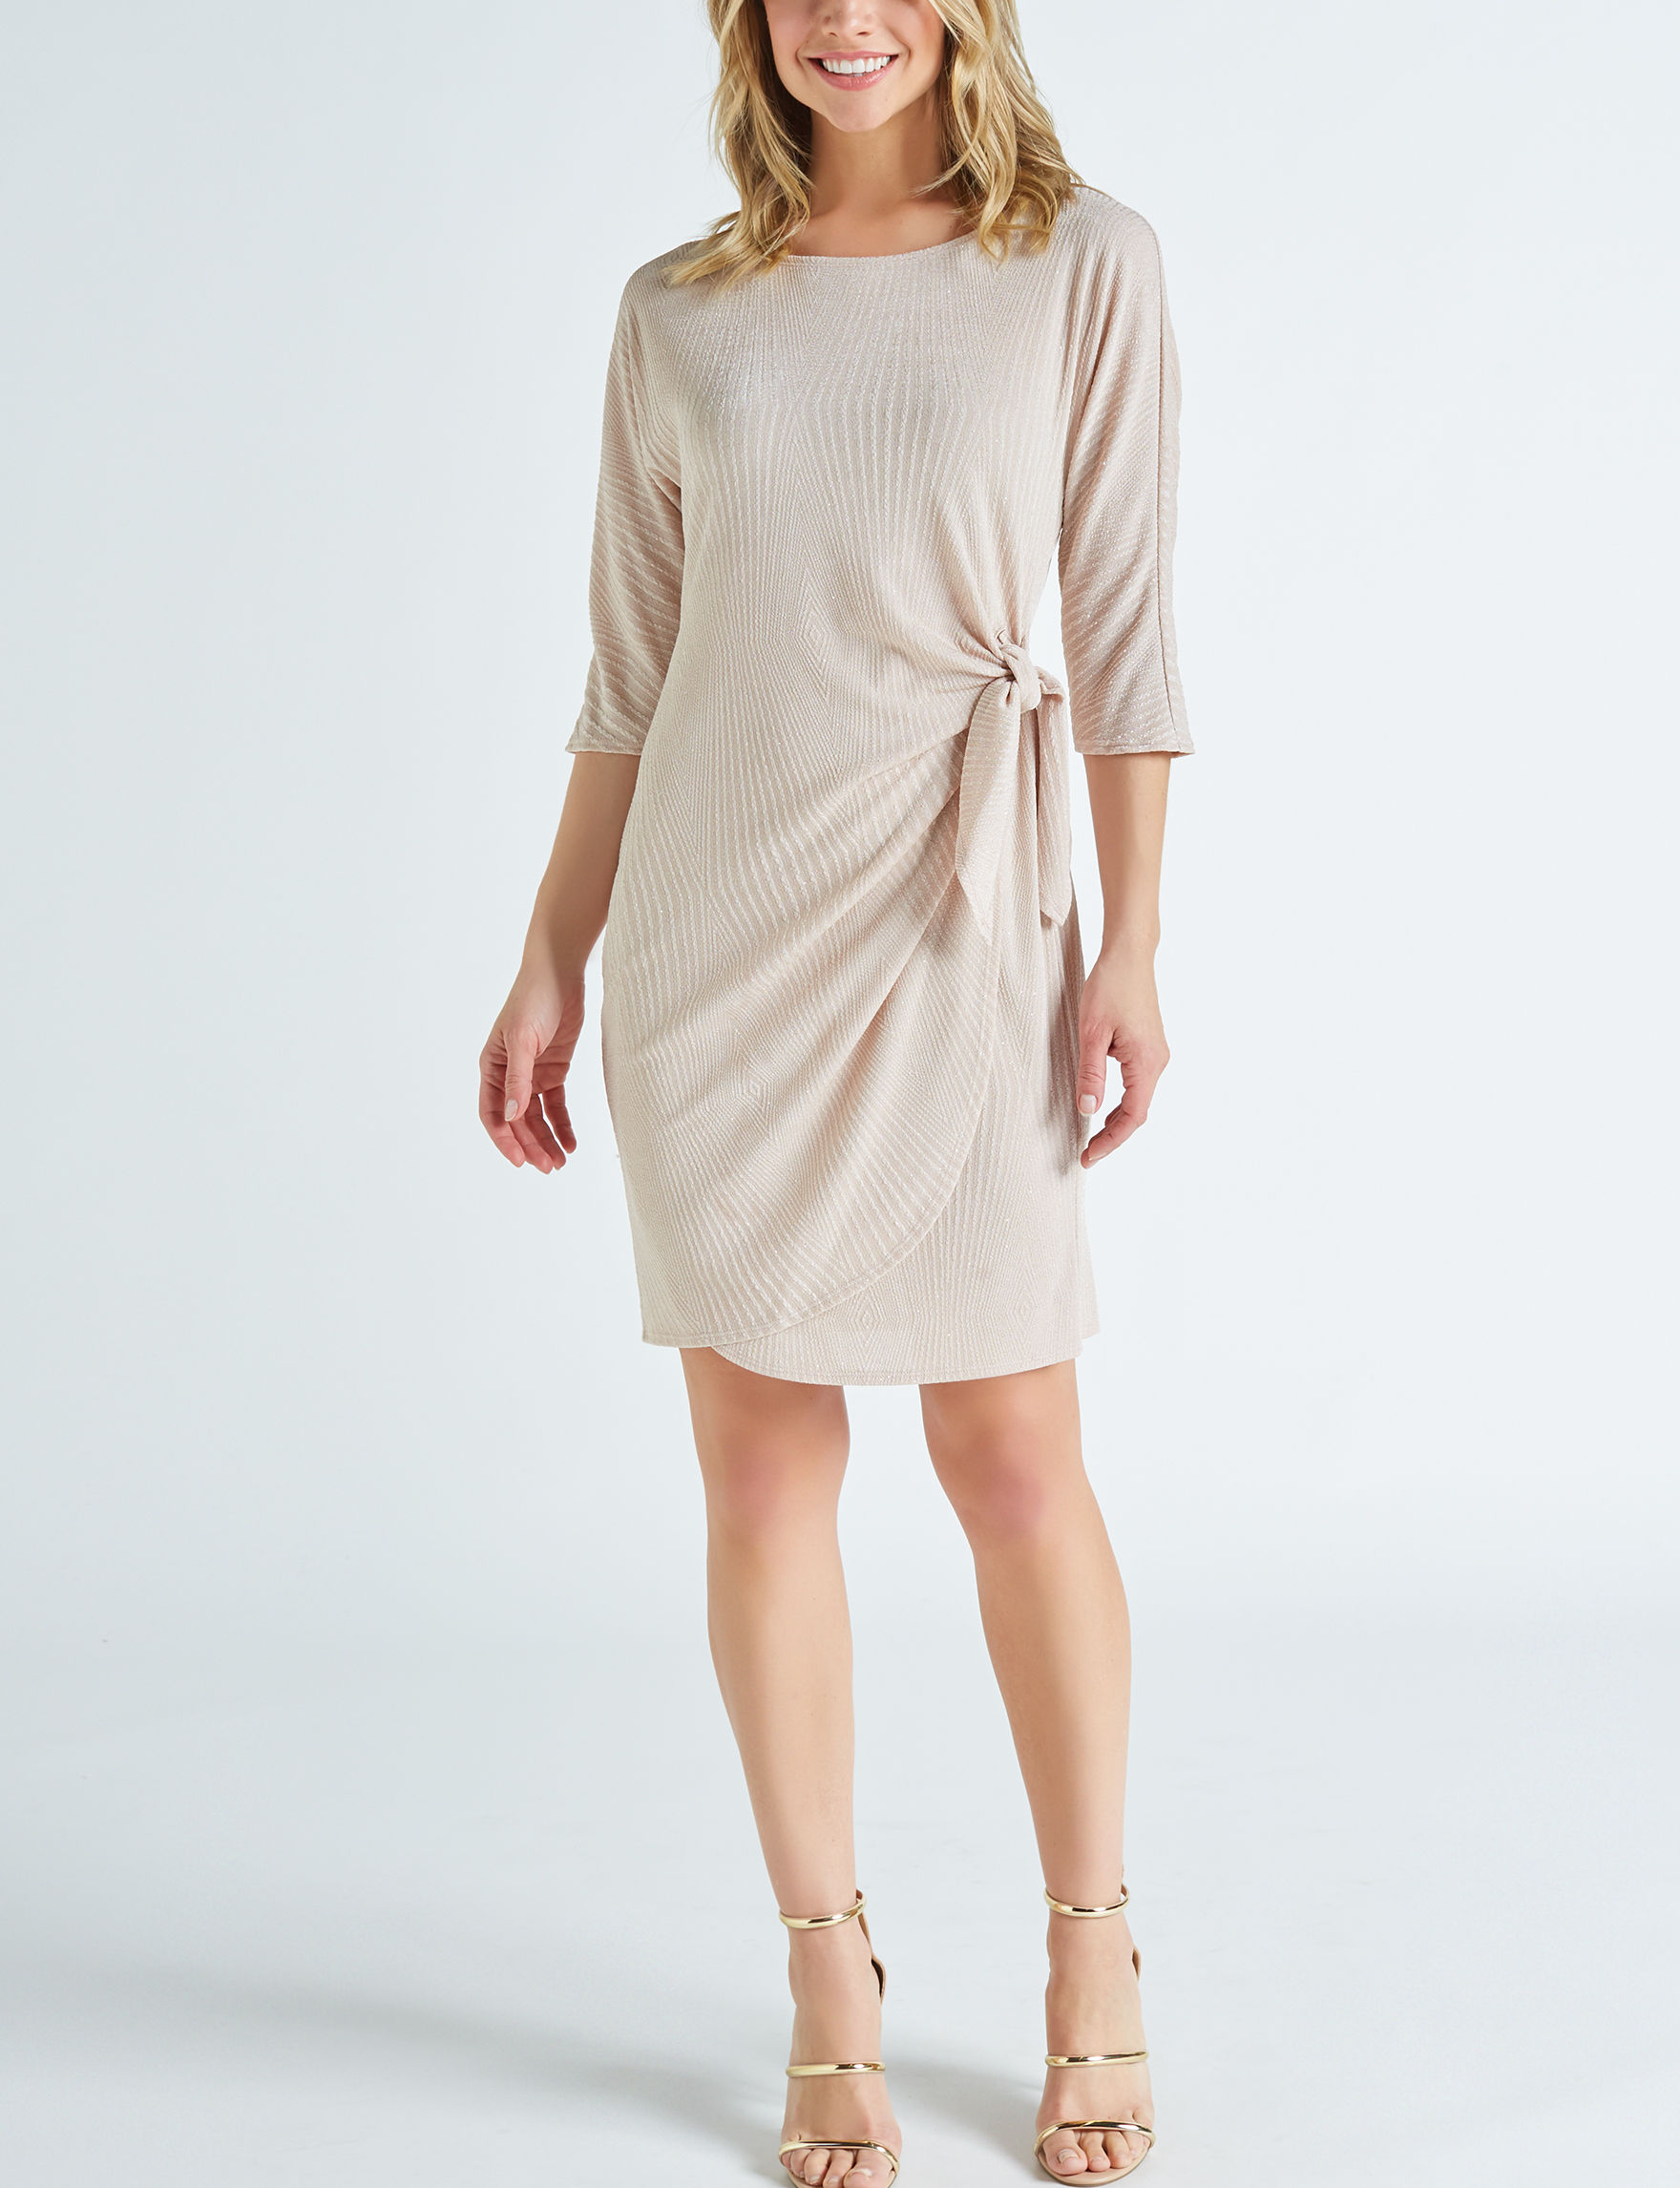 Robbie Bee Champagne Everyday & Casual A-line Dresses